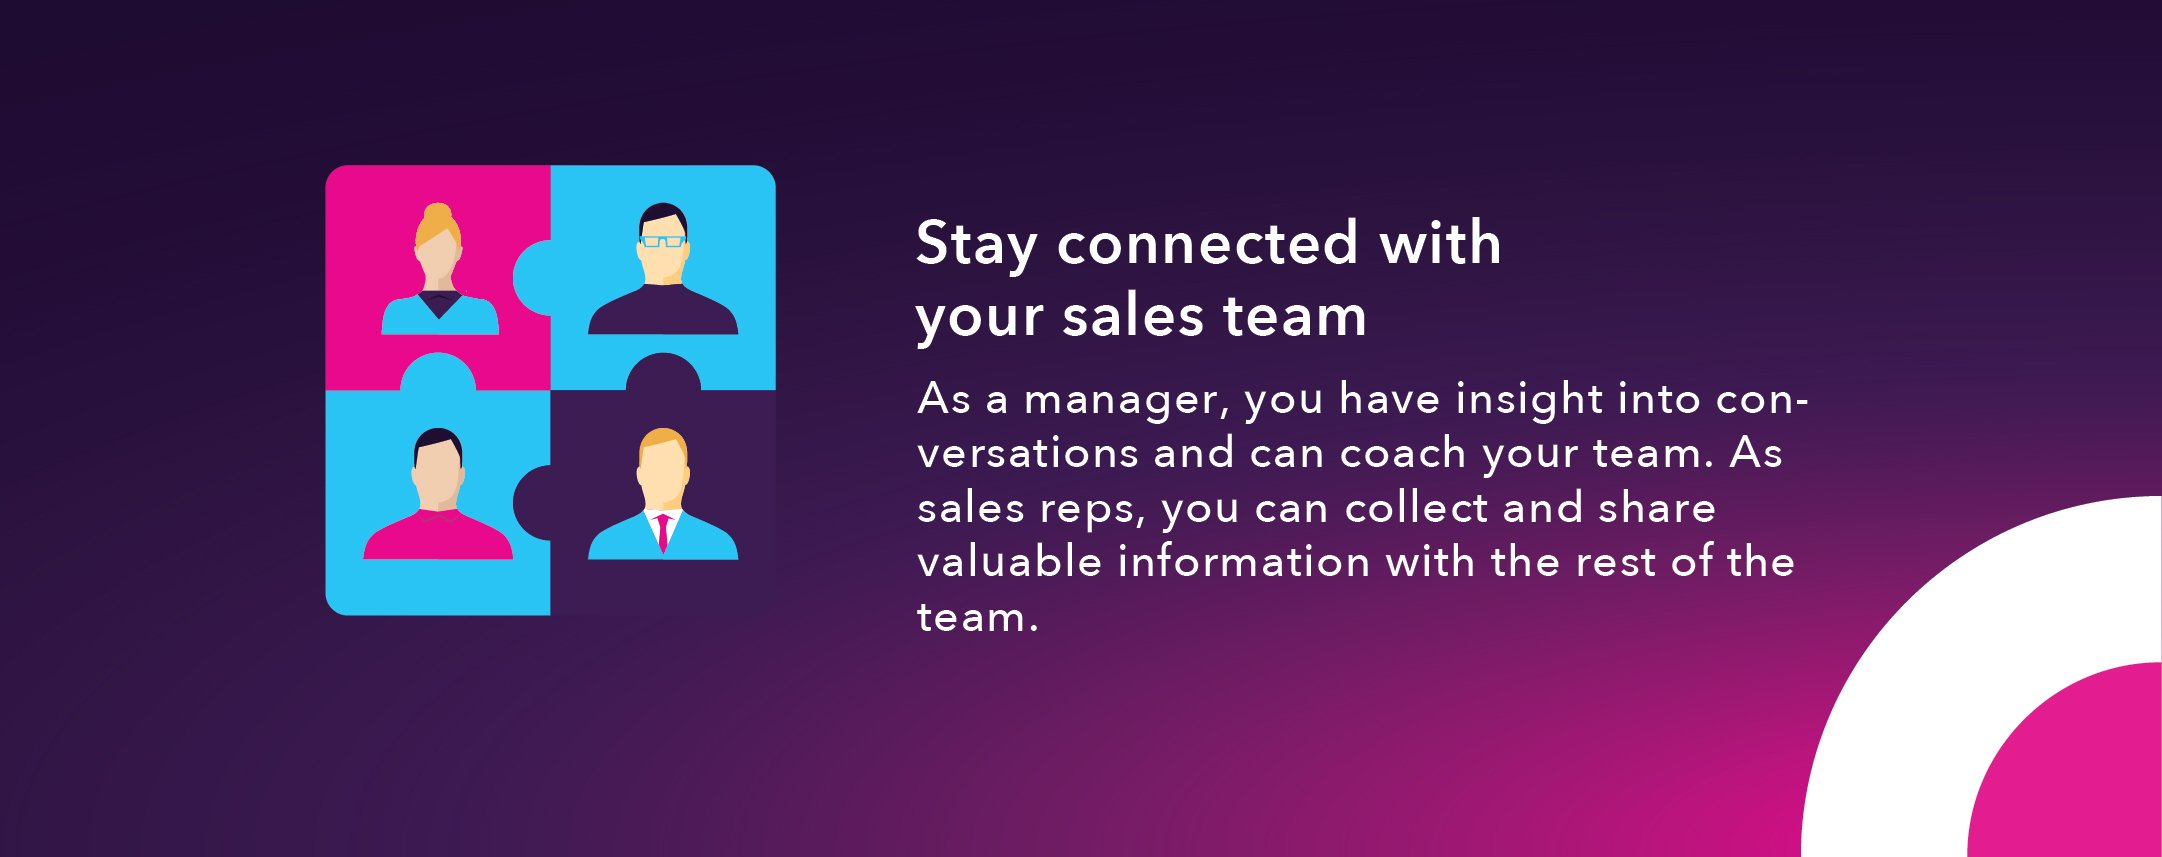 9. Stay connected with your sales team